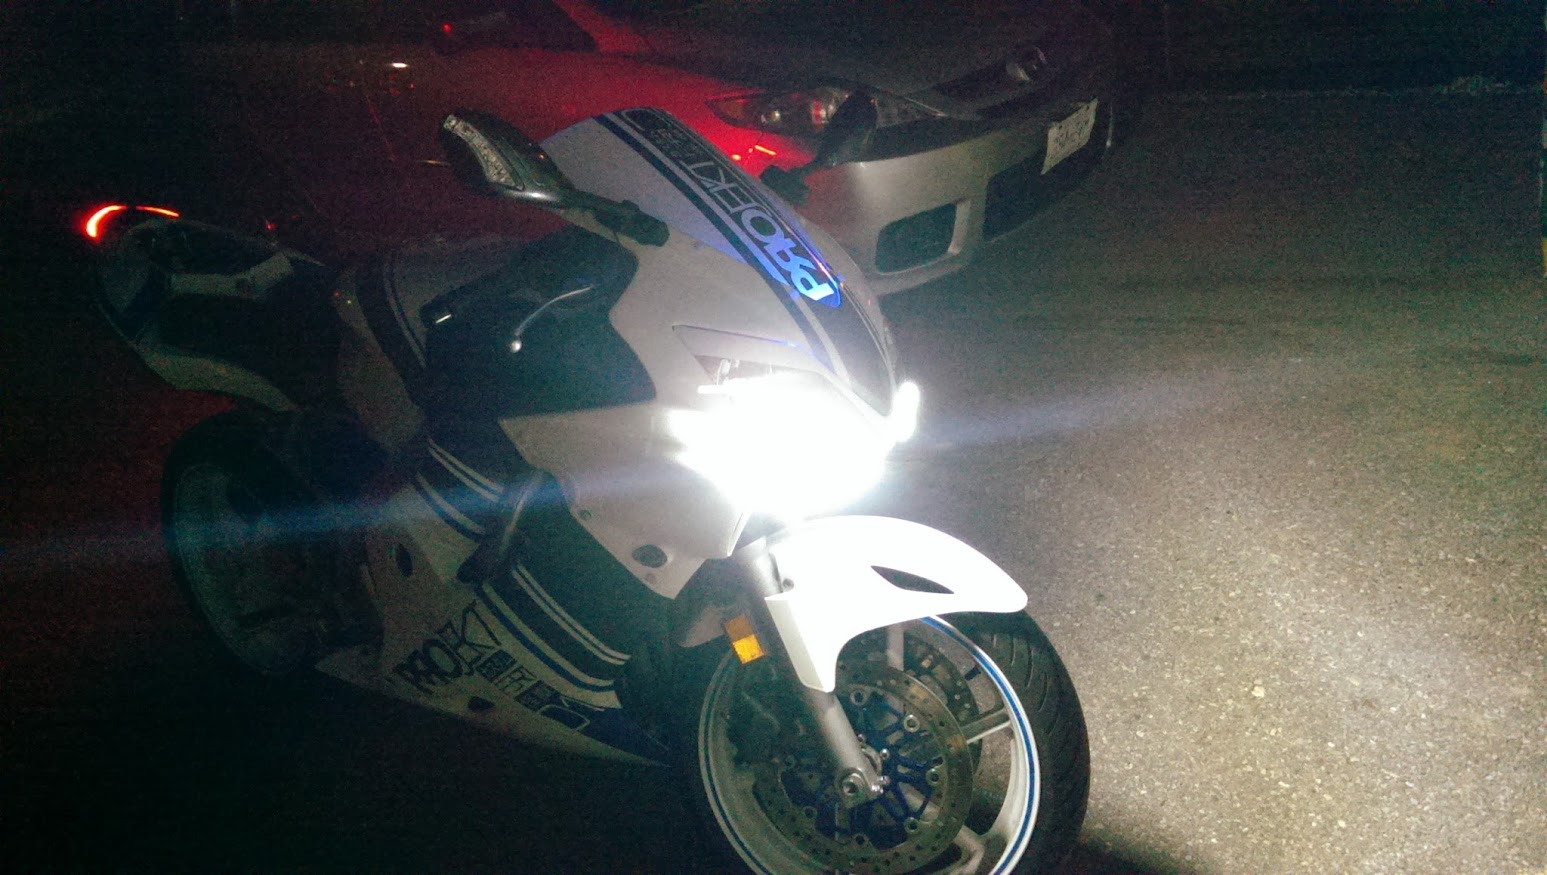 98 Cbr F3 Project Bike Sssa Car Rim R1 Tail F4i Front Page 25 Headlight T Shirt New Led Drls They Are Bright Enough To Use Until Dusk Then I Flip On The Lights Run These Full Time Wired Illumination Wire From Gauge